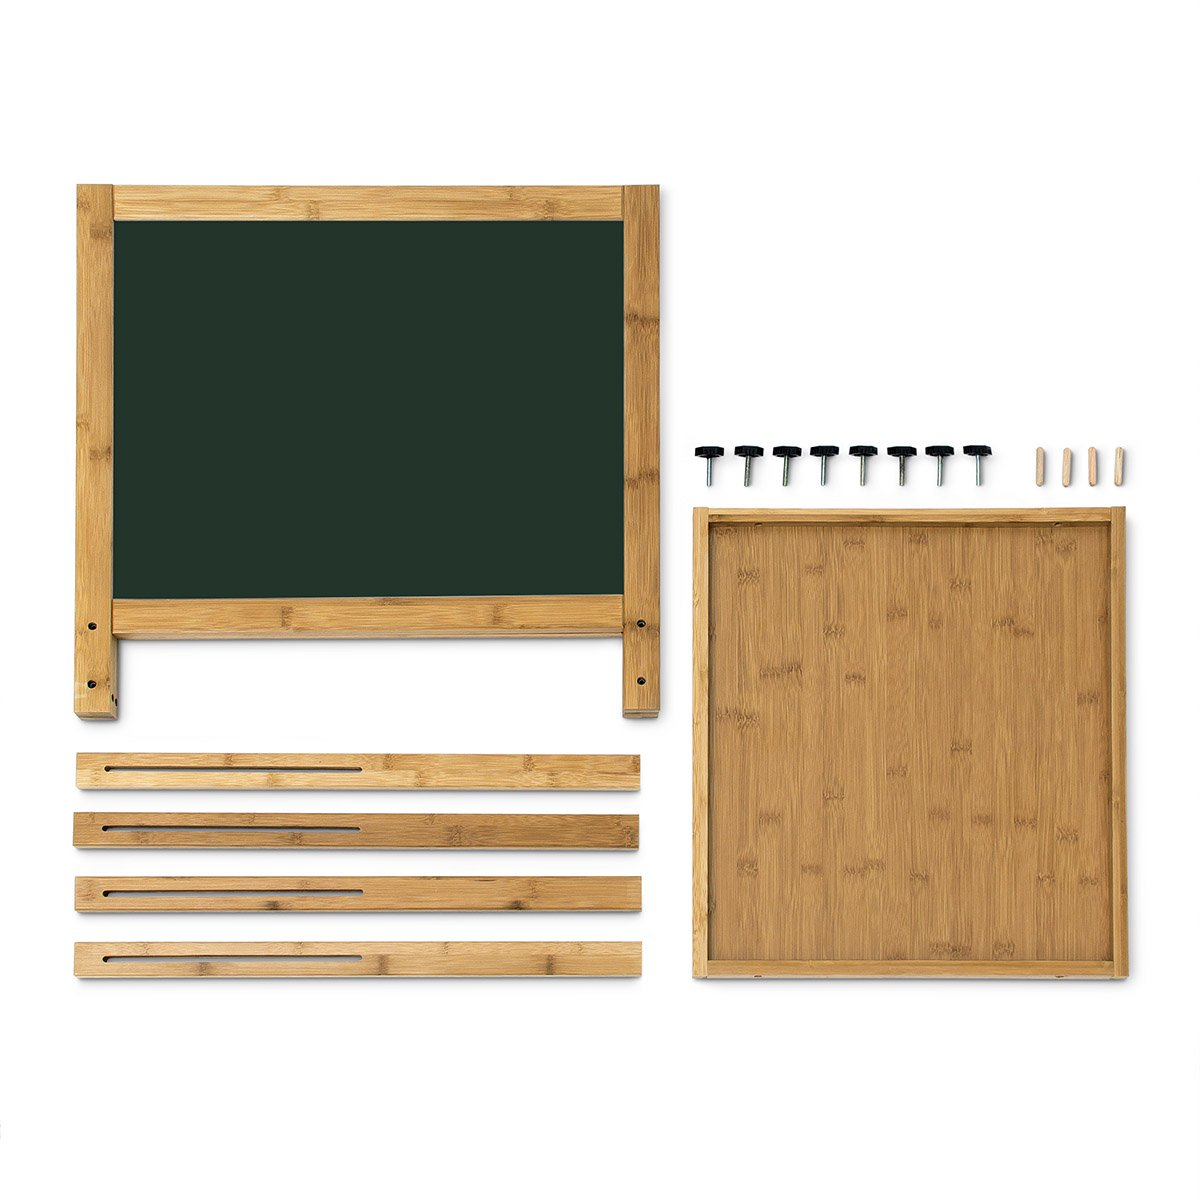 Relaxdays Bamboo Magnetic Blackboard Children's Chalk Board Height Adjustable Whiteboard (93x56.5cm) Dry Erase Board Painting Table Free-Standing Board, Green by Relaxdays